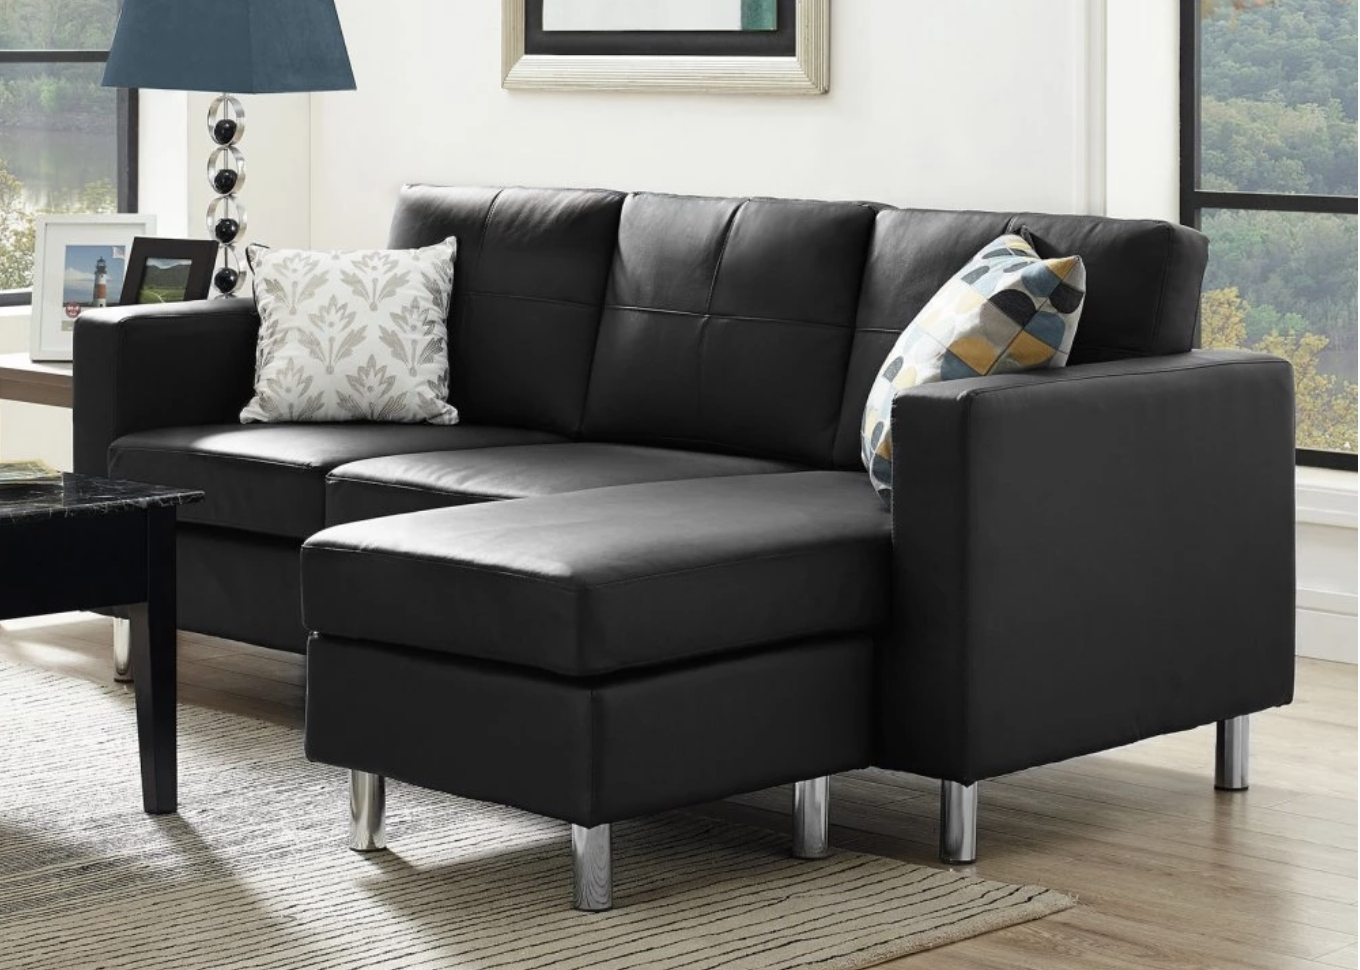 75 Modern Sectional Sofas For Small Spaces (2018) With Best And Newest Sectional Sofas For Small Rooms (View 1 of 15)